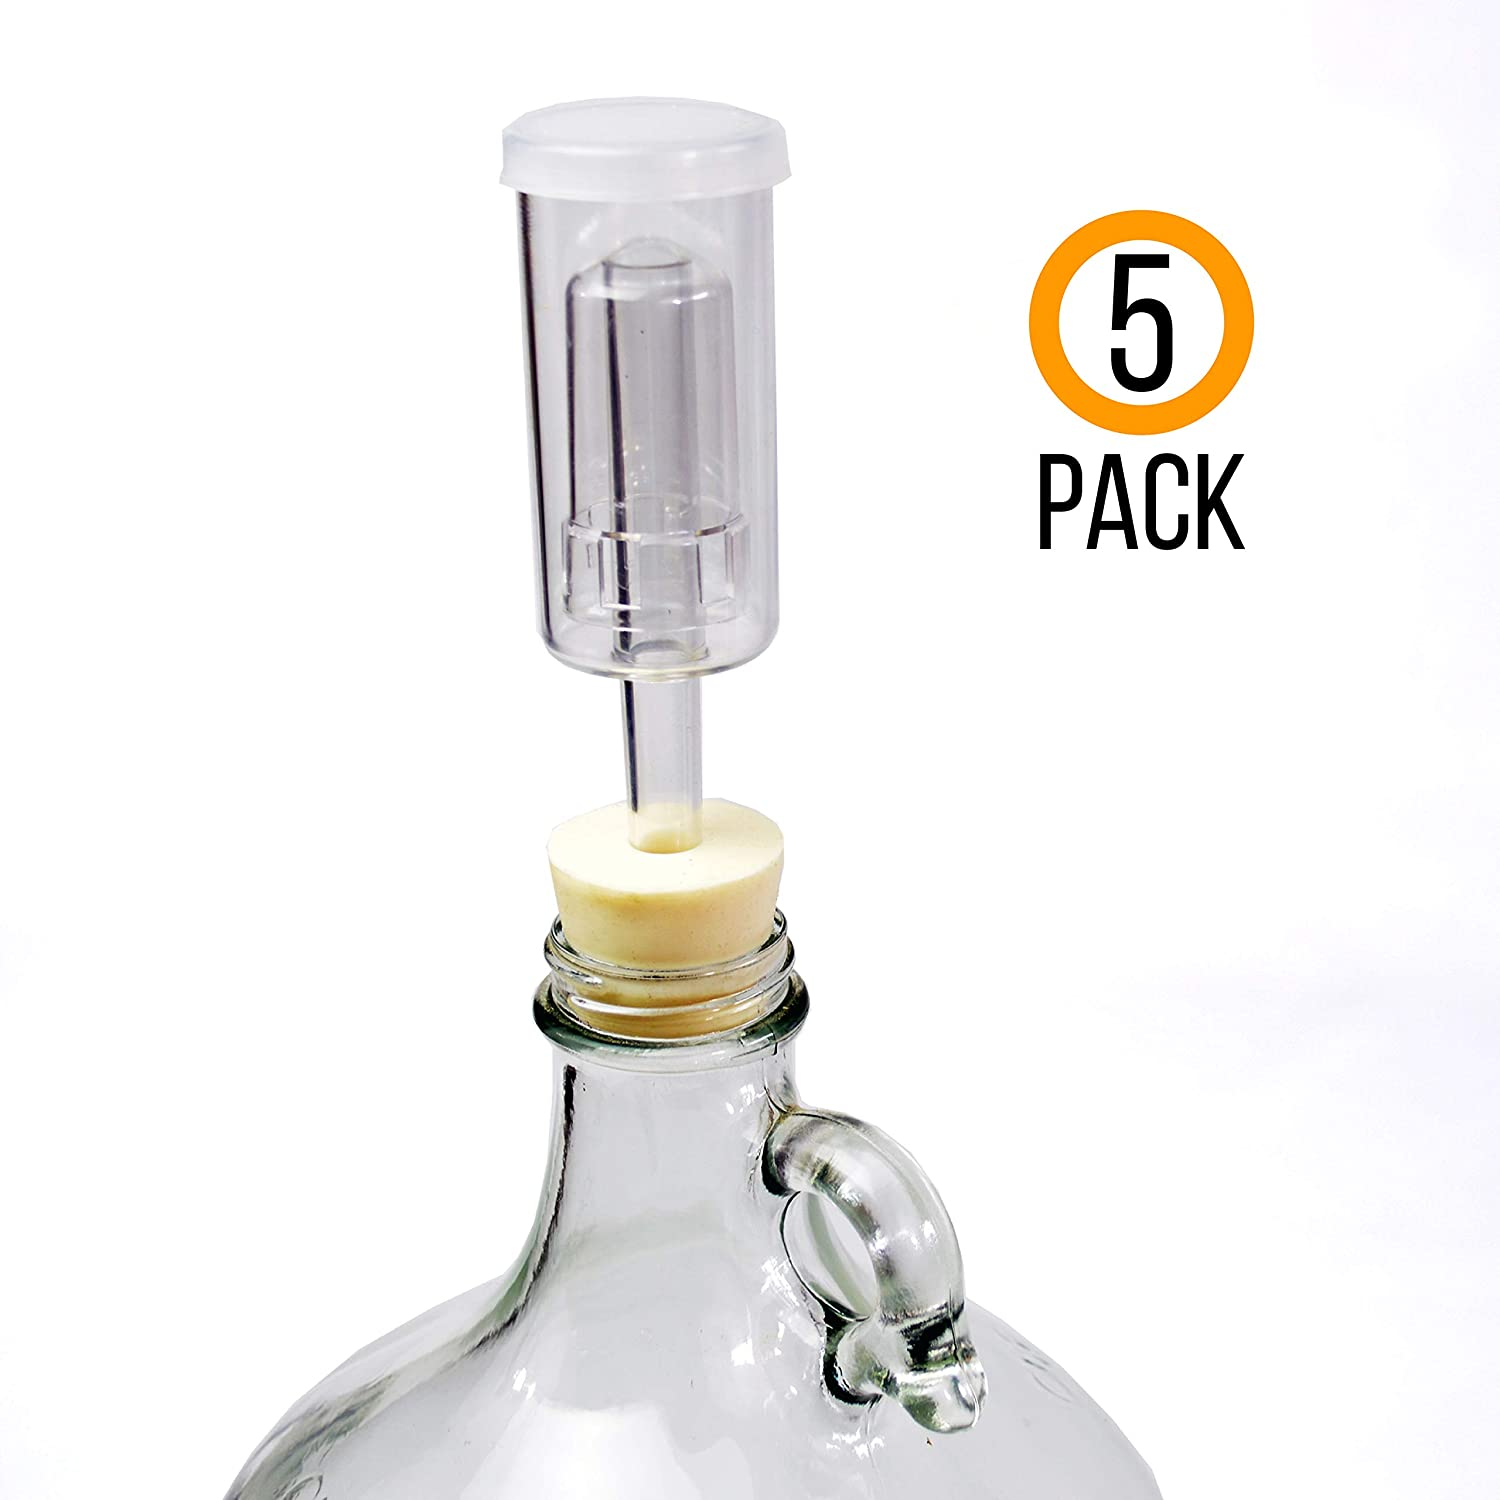 Box Brew Kits (5 Pack) Three-Piece Airlock and Drilled #6 Stopper Fermentation Beer Making Wine Making Kombucha Fits Gallon Jugs (5)